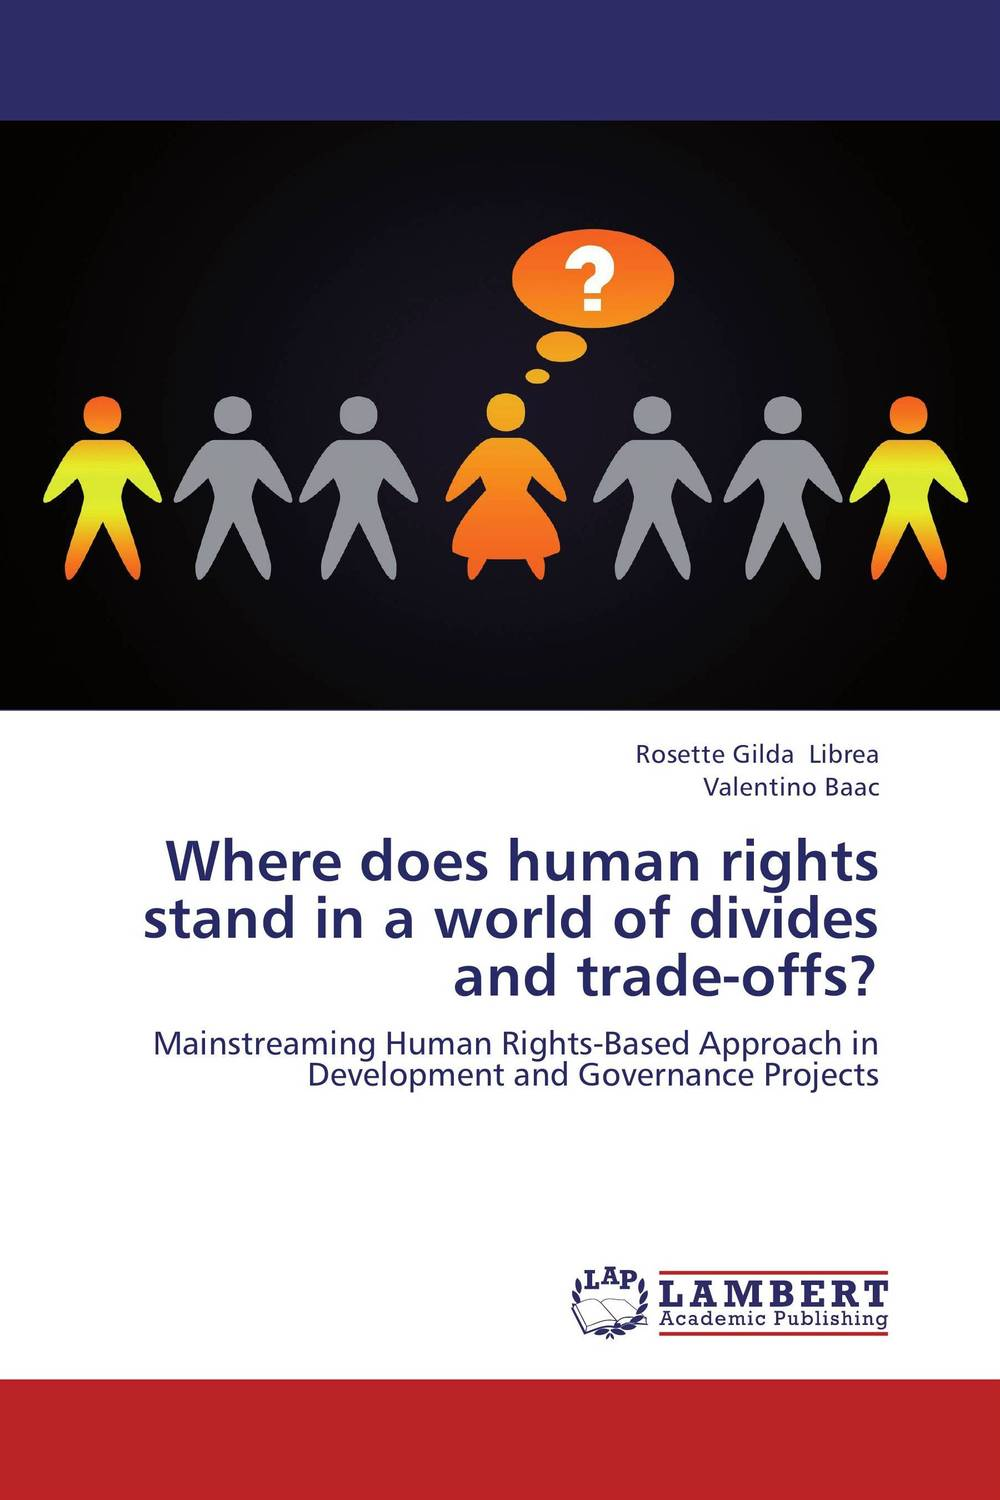 Where does human rights stand in a world of divides and trade-offs? foreign policy as a means for advancing human rights